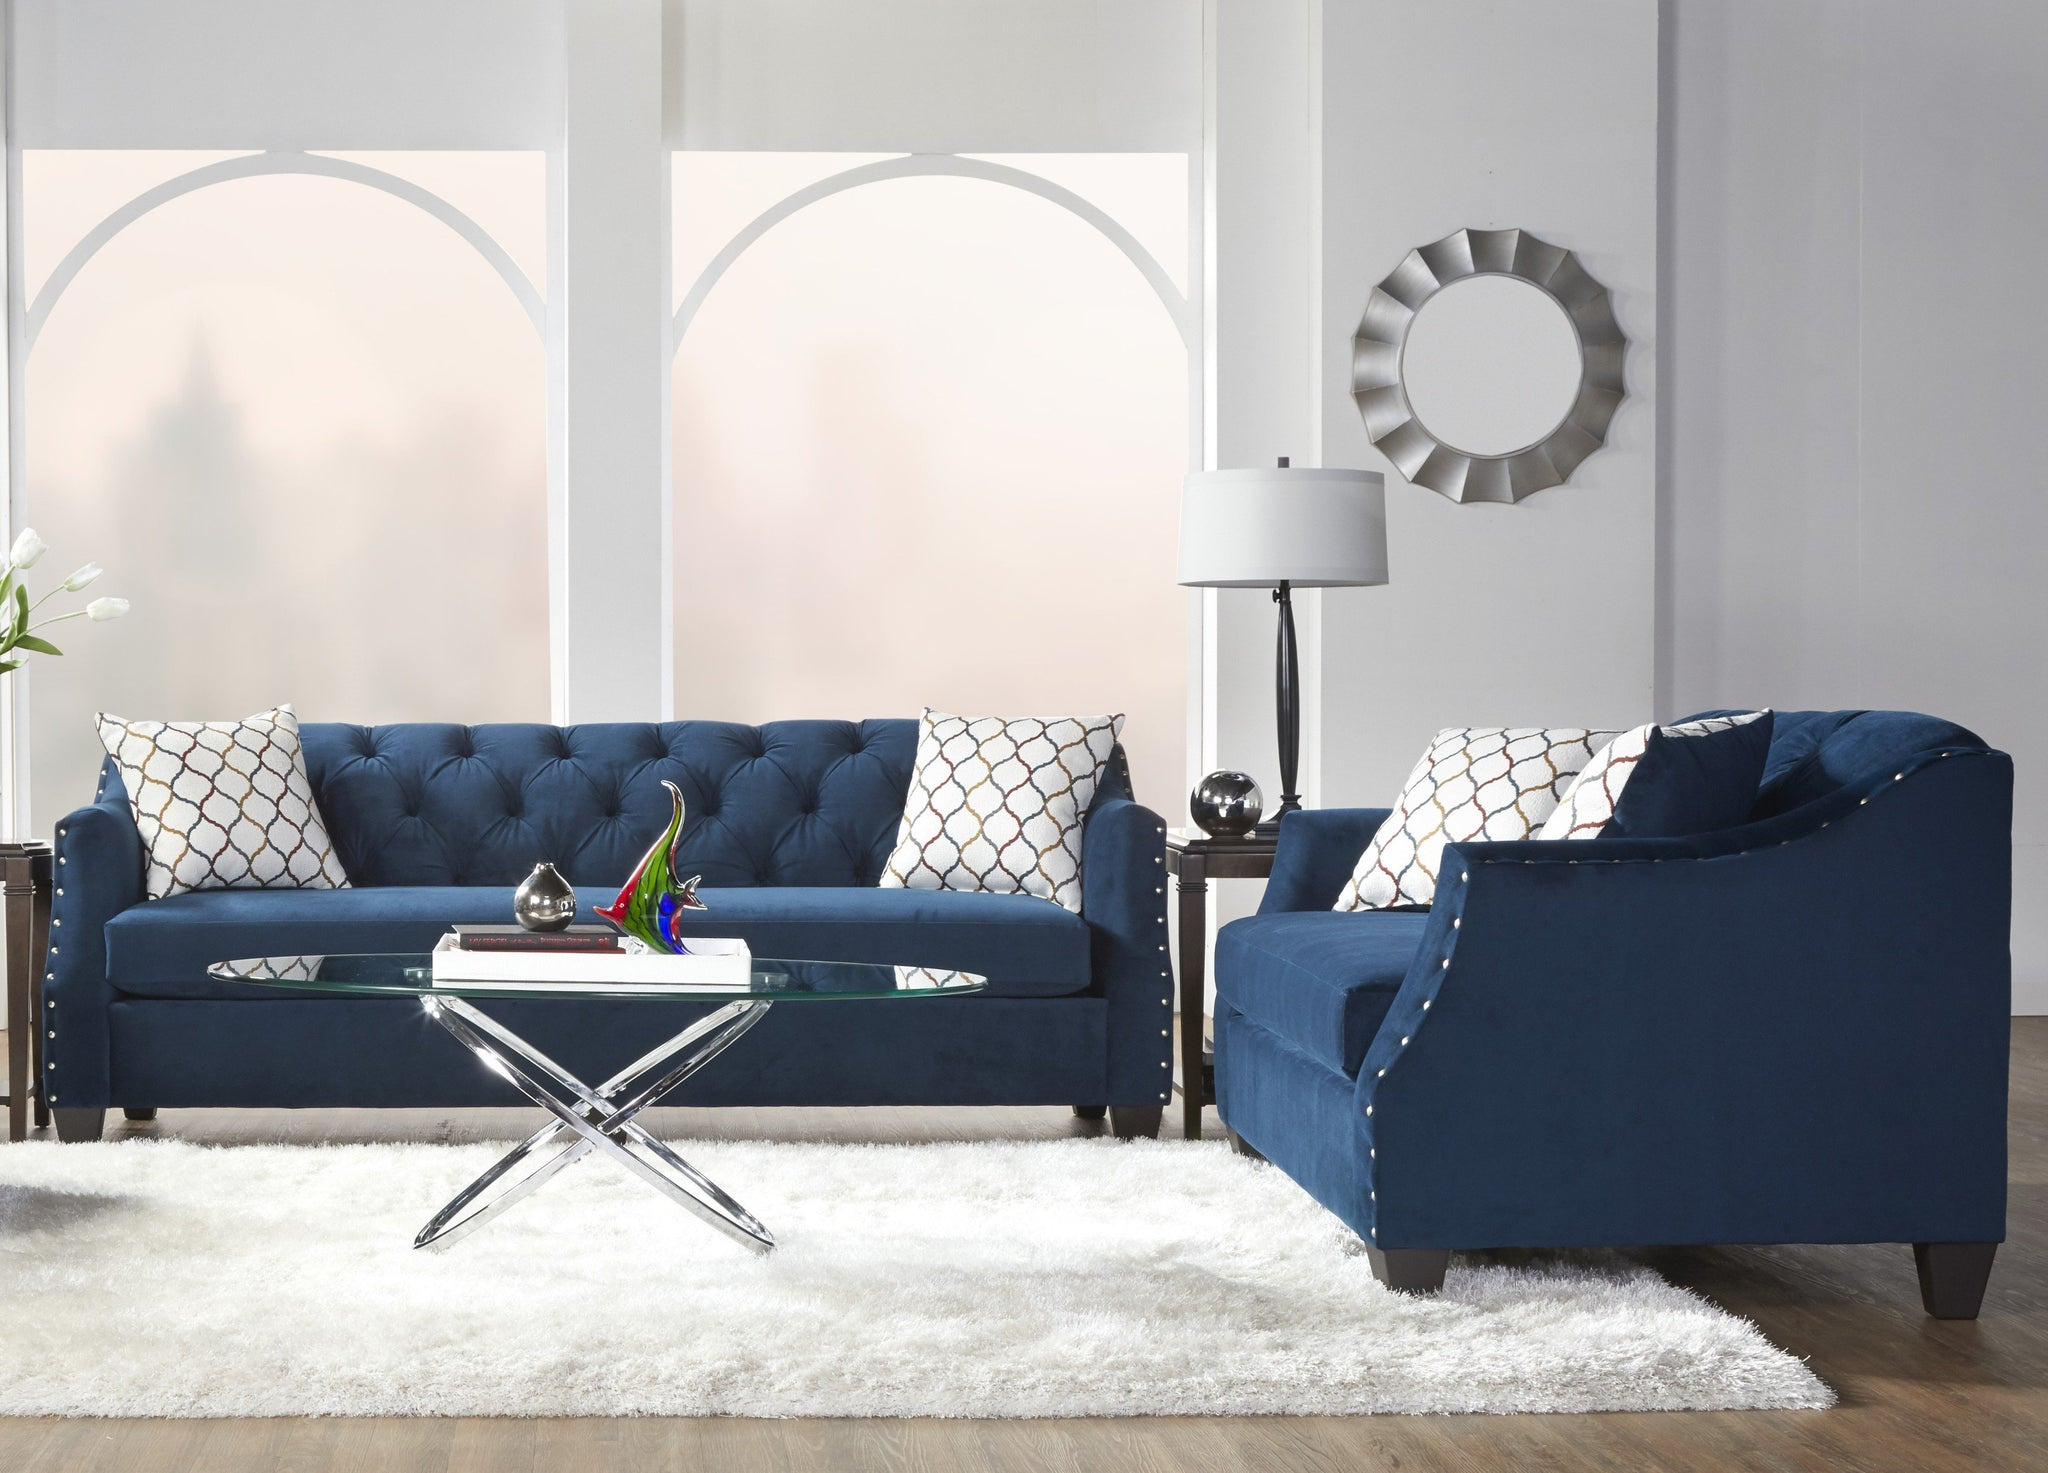 Moselle Transitional Modern Velvet Tufted Nainhead Trim Sofa and Loveseat Set, Blue